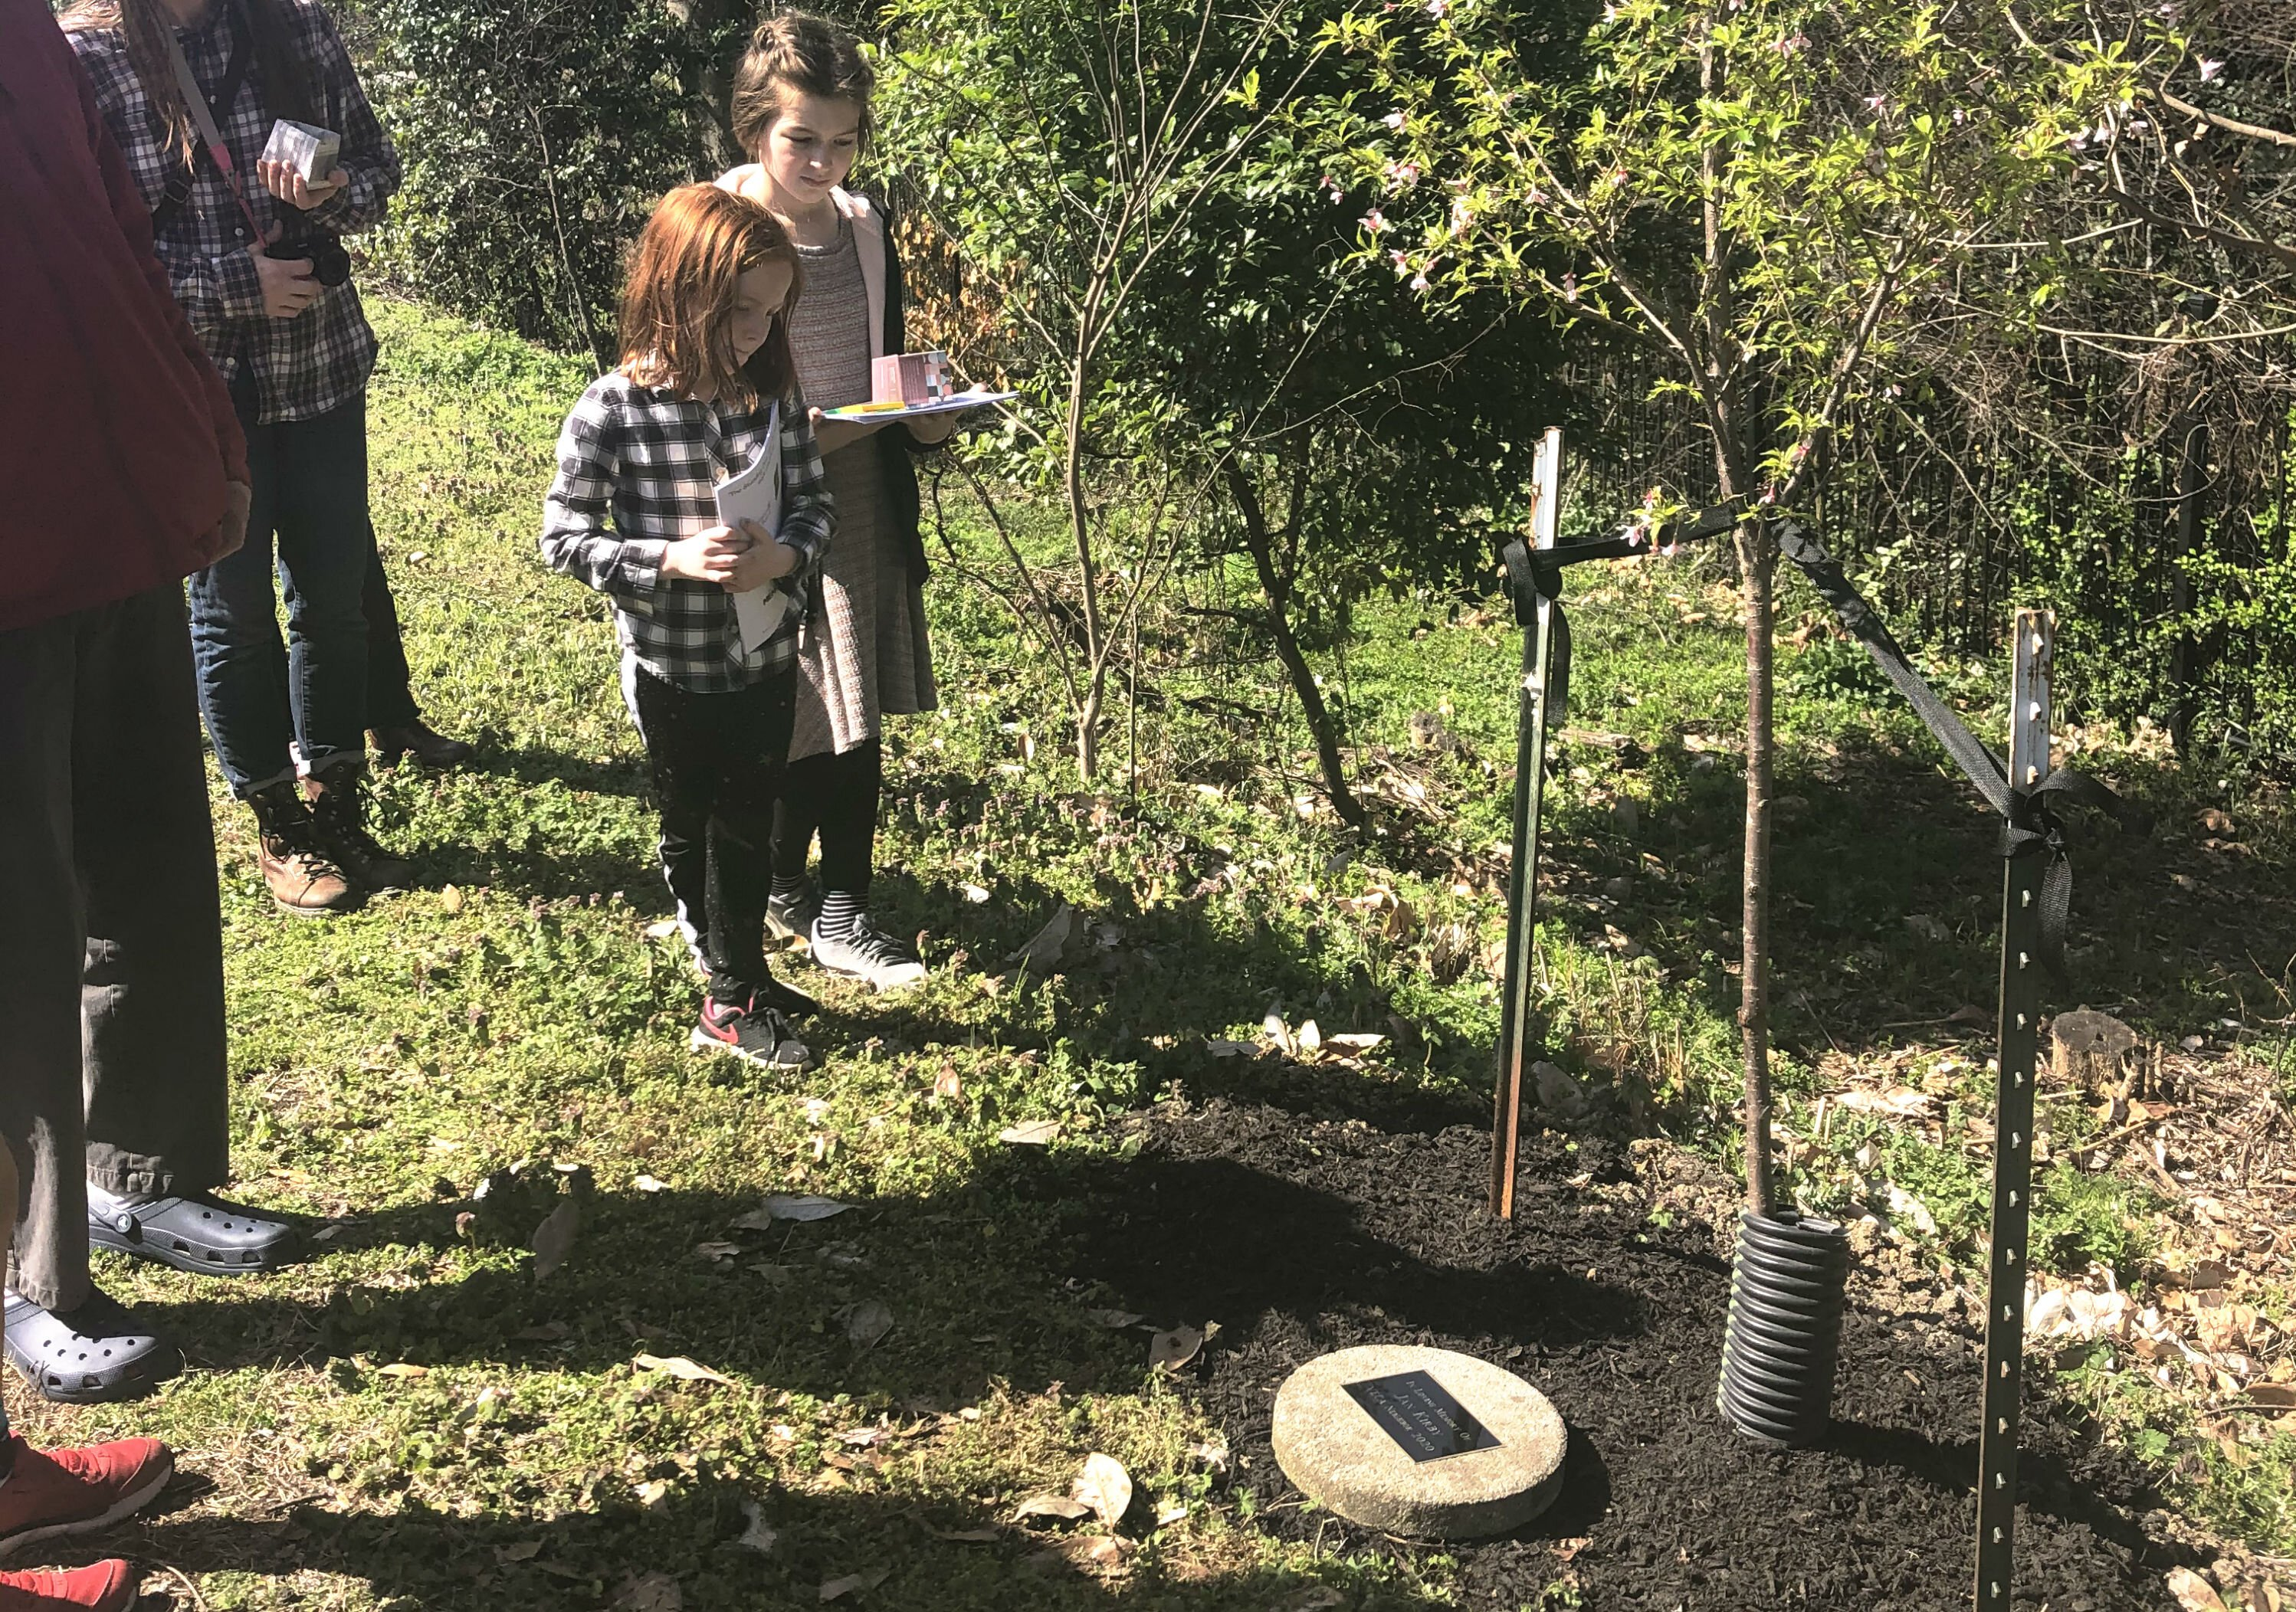 Neighbors and friends reflect on the life of longtime Vollintine-Evergreen resident and V&E Greenline leader, Jan Kirby. At the March 7 Arbor Day Celebration, those gathered installed a plaque and planted a tree in Kirby's honor. (Ashley Davis)